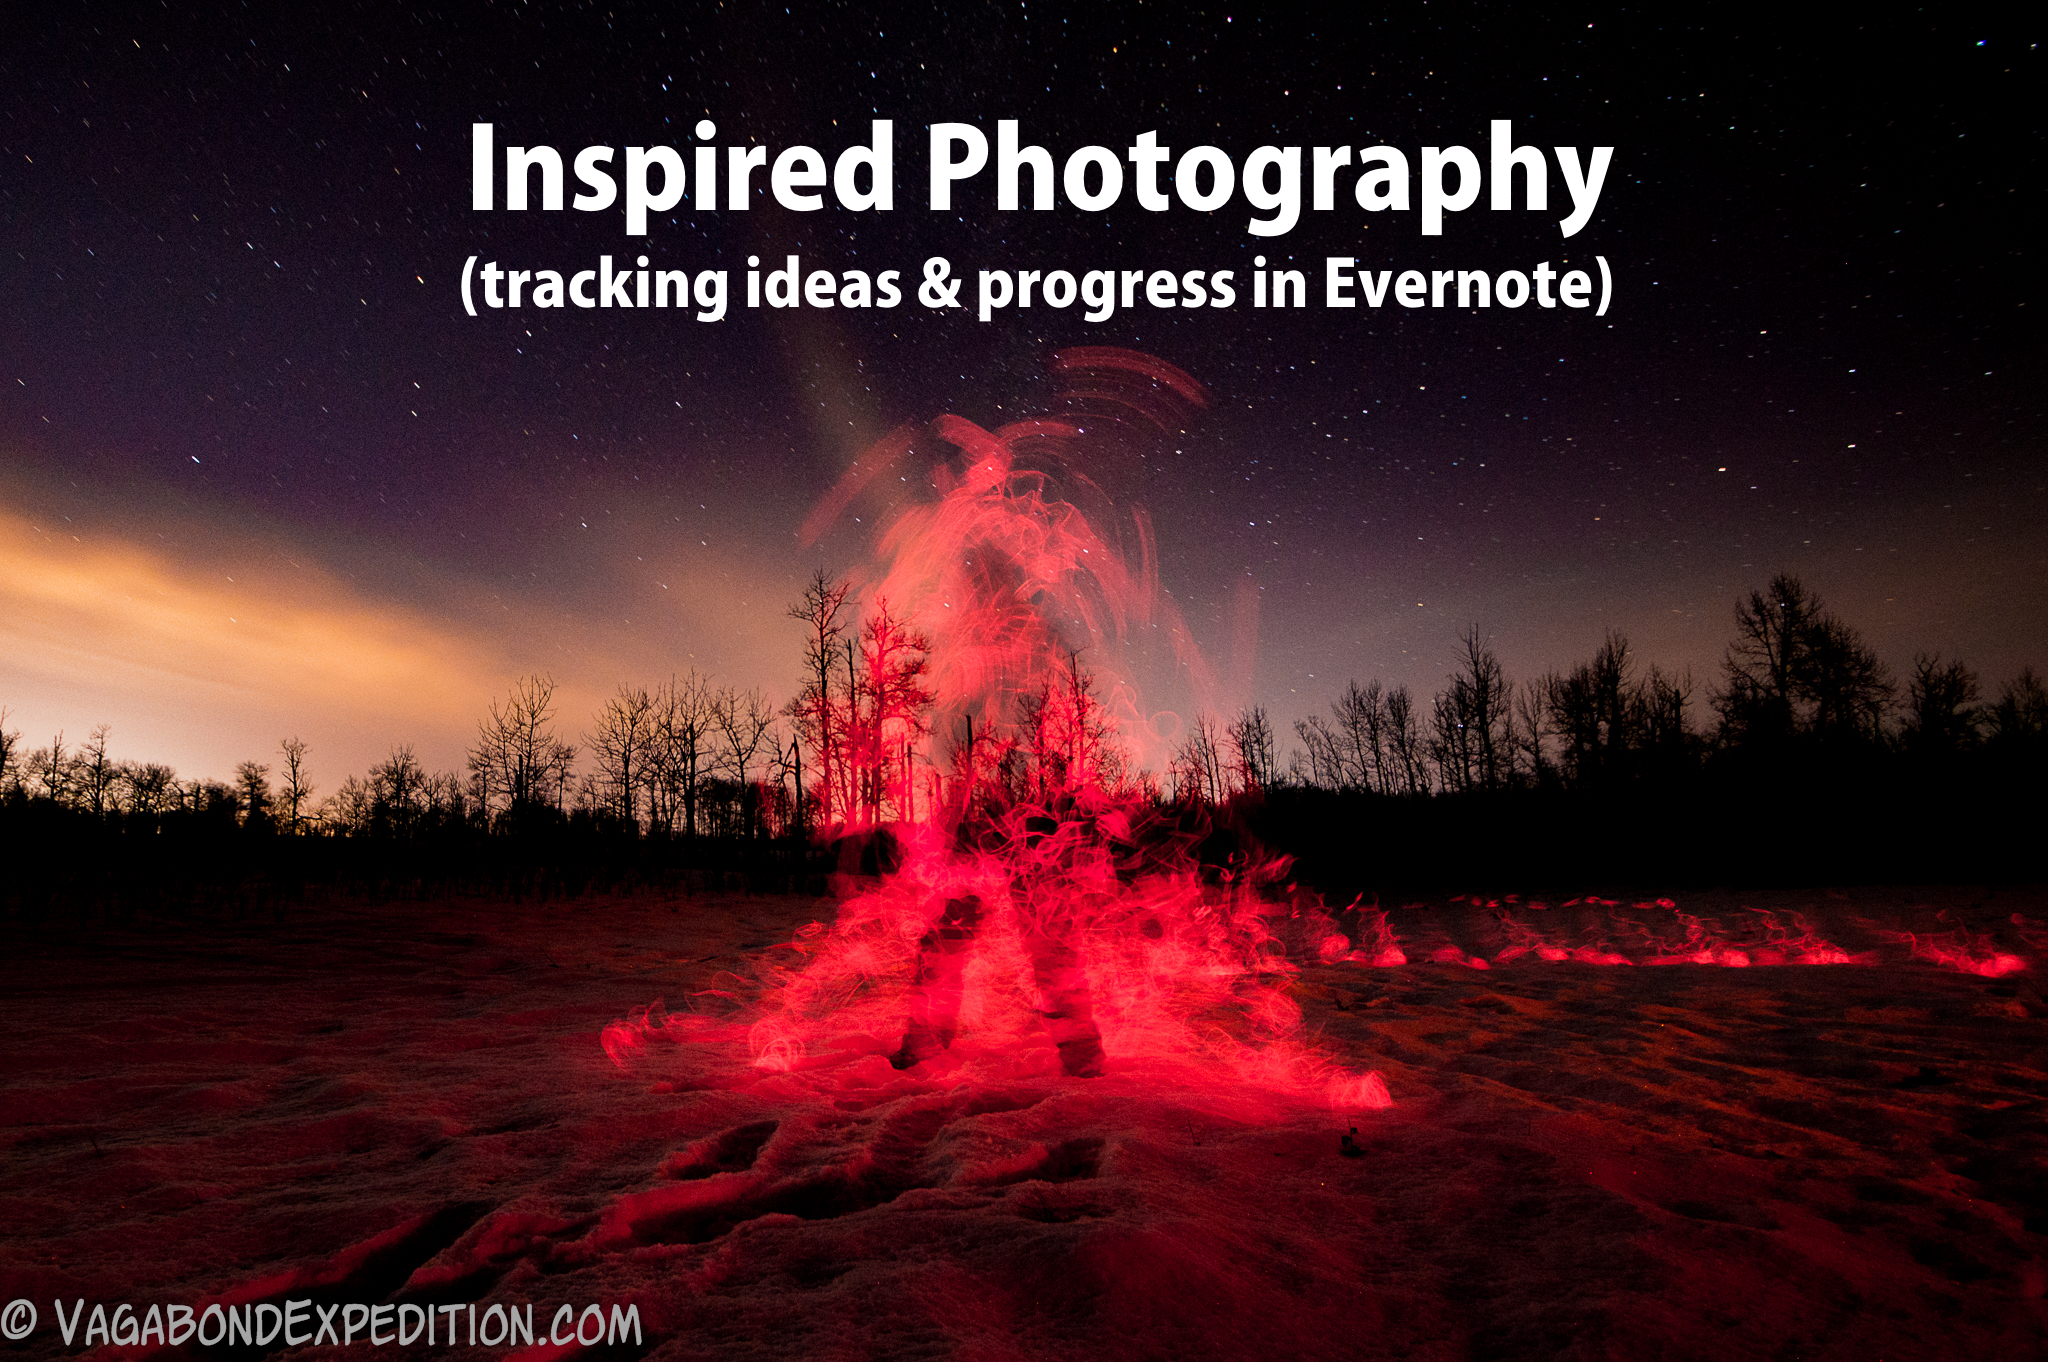 keep track of your inspirations of amazing photography using Evernote